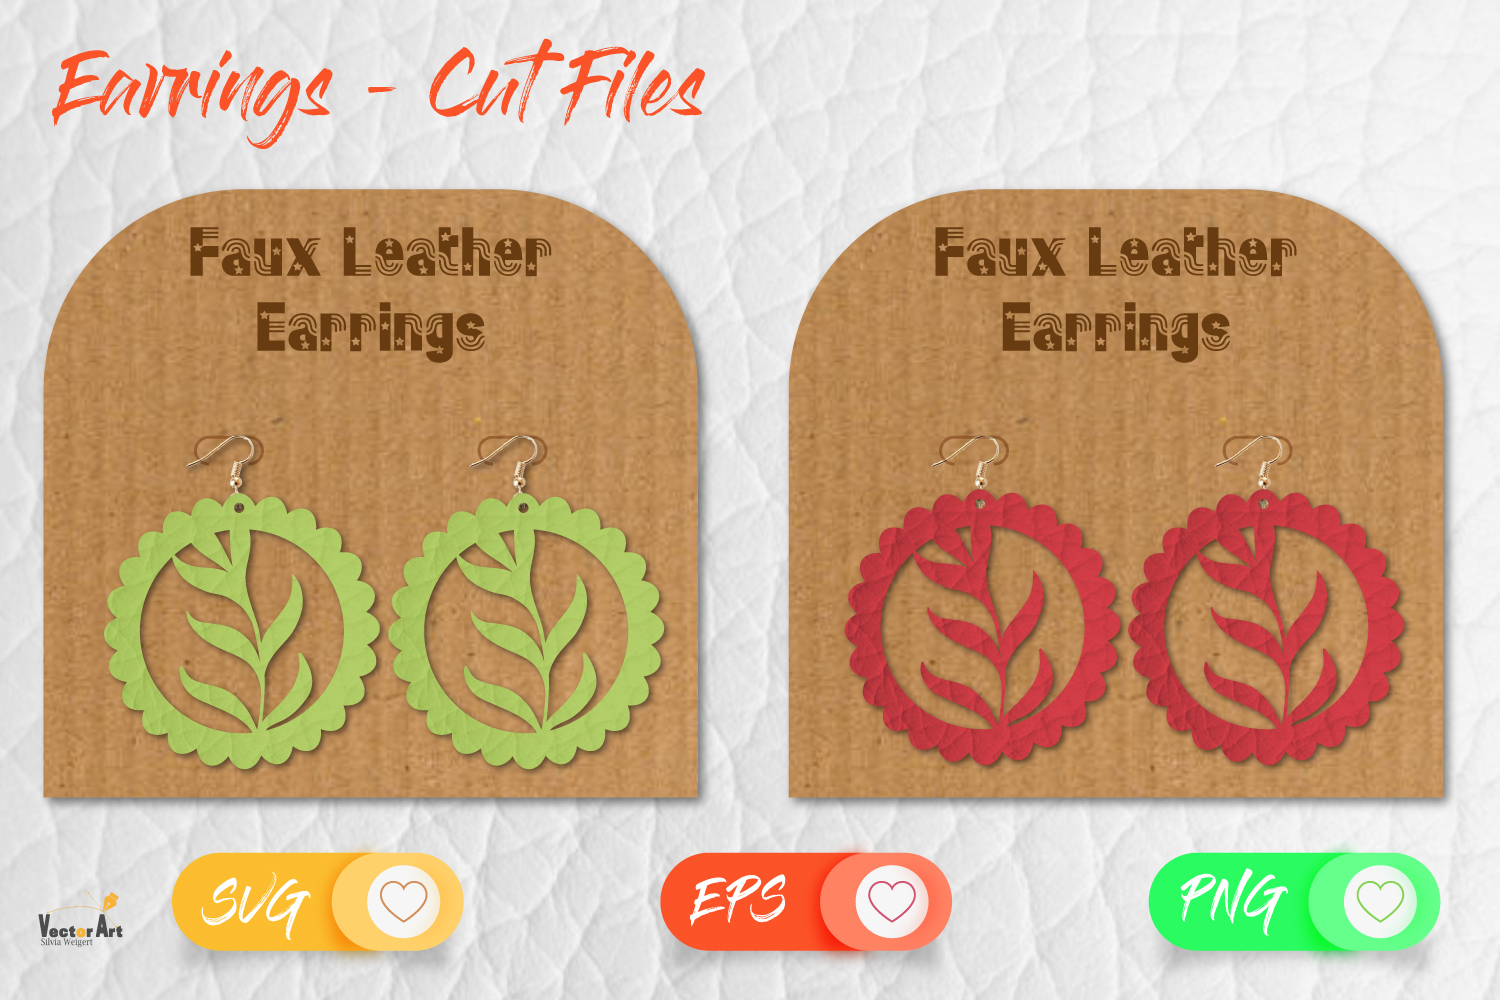 5 Earrings - Mini Bundle - Cut files example image 16